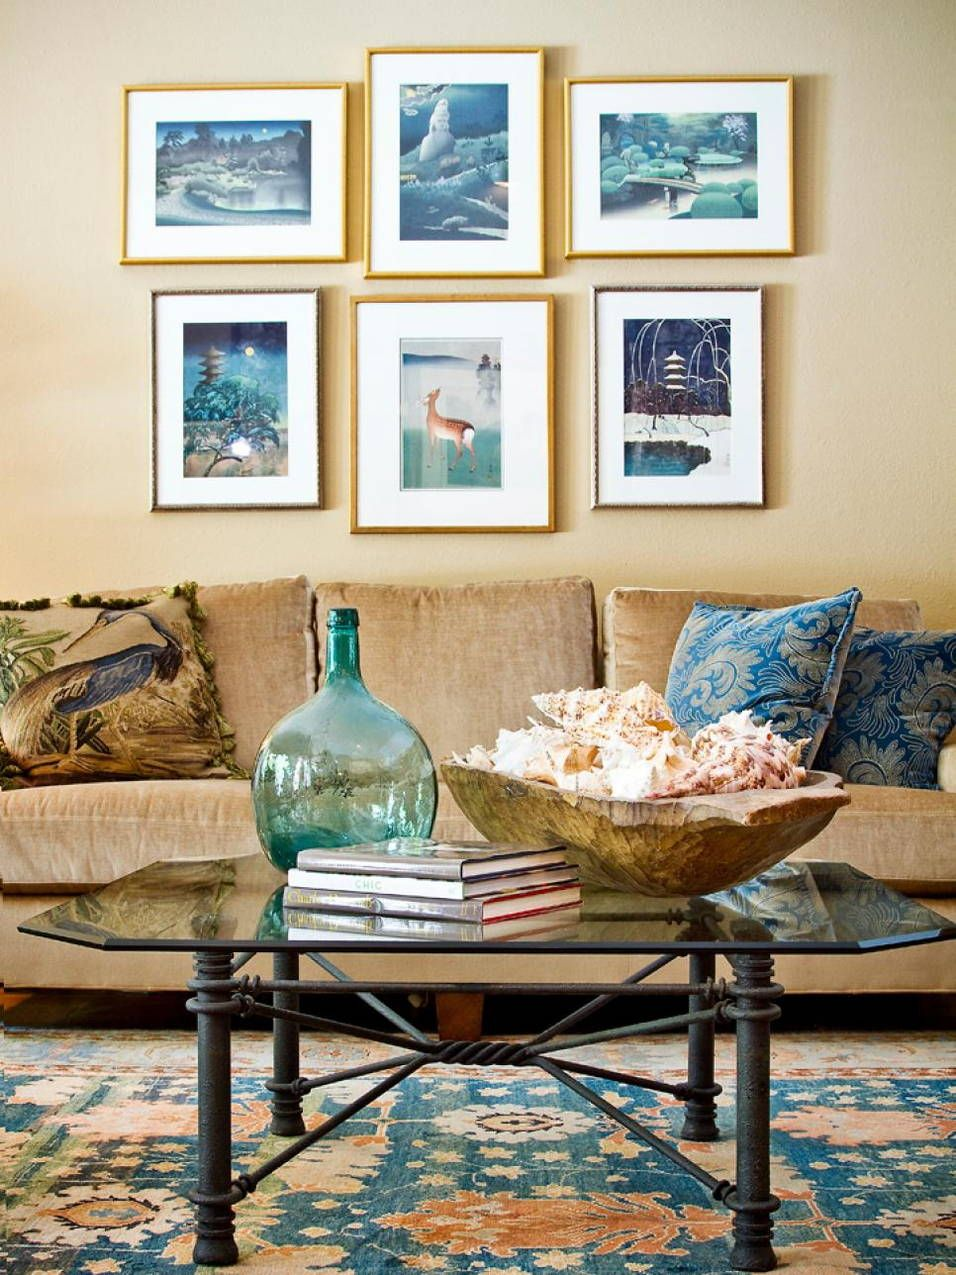 Glass Coffee Table Decorating Ideas Pictures Eclectic Living Room Living Room Designs Coastal Living Rooms [ 1275 x 956 Pixel ]